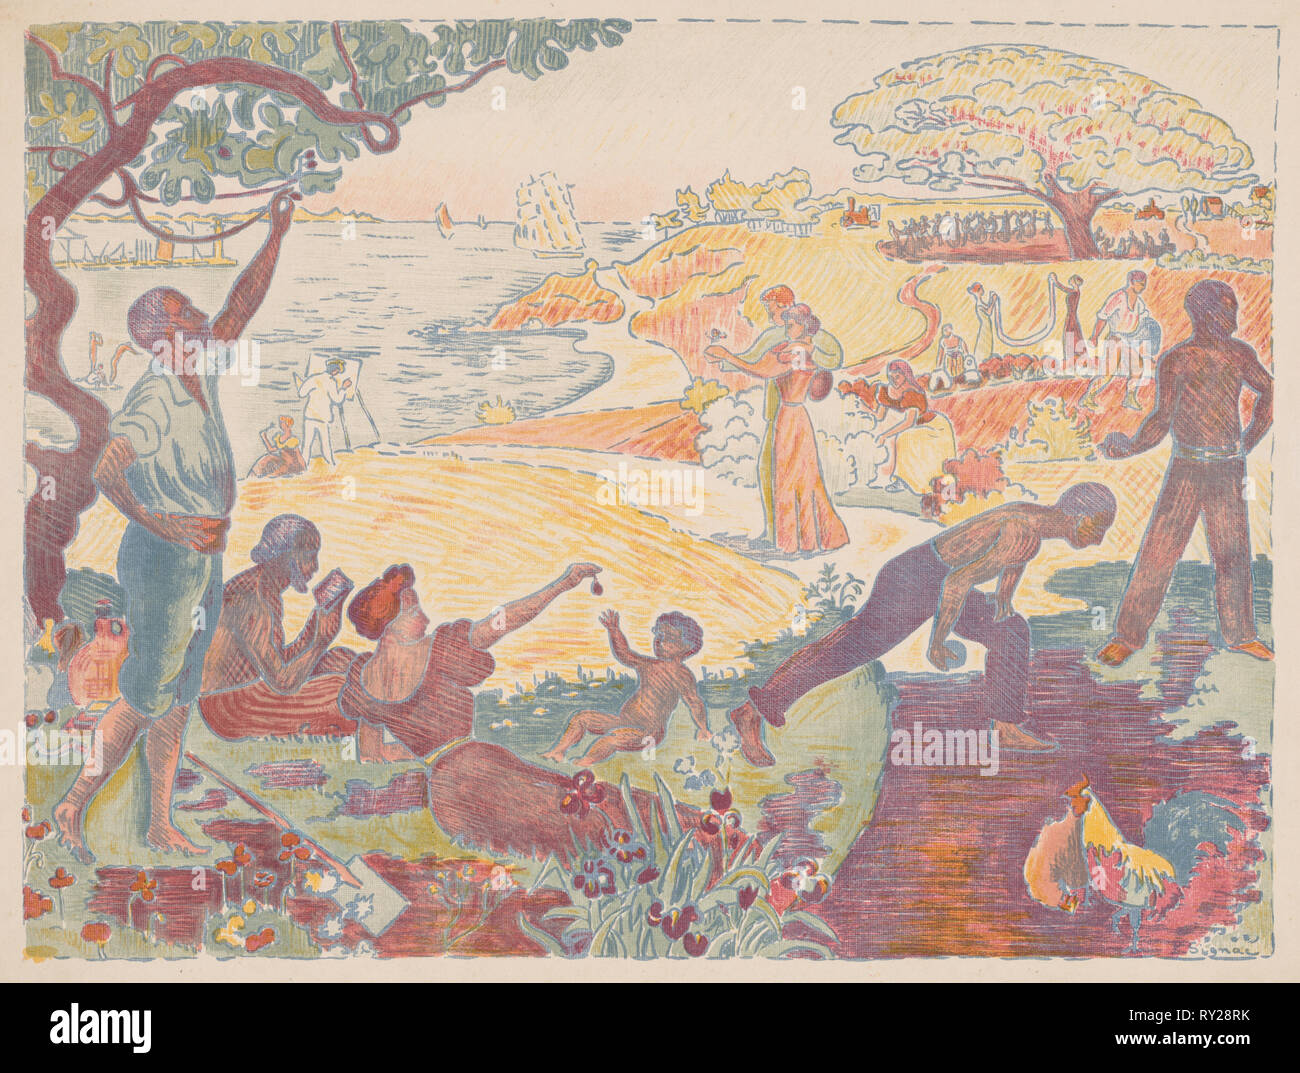 Harmonious Times, 1895-1896. Paul Signac (French, 1863-1935). Color lithograph; sheet: 50 x 37.6 cm (19 11/16 x 14 13/16 in Stock Photo